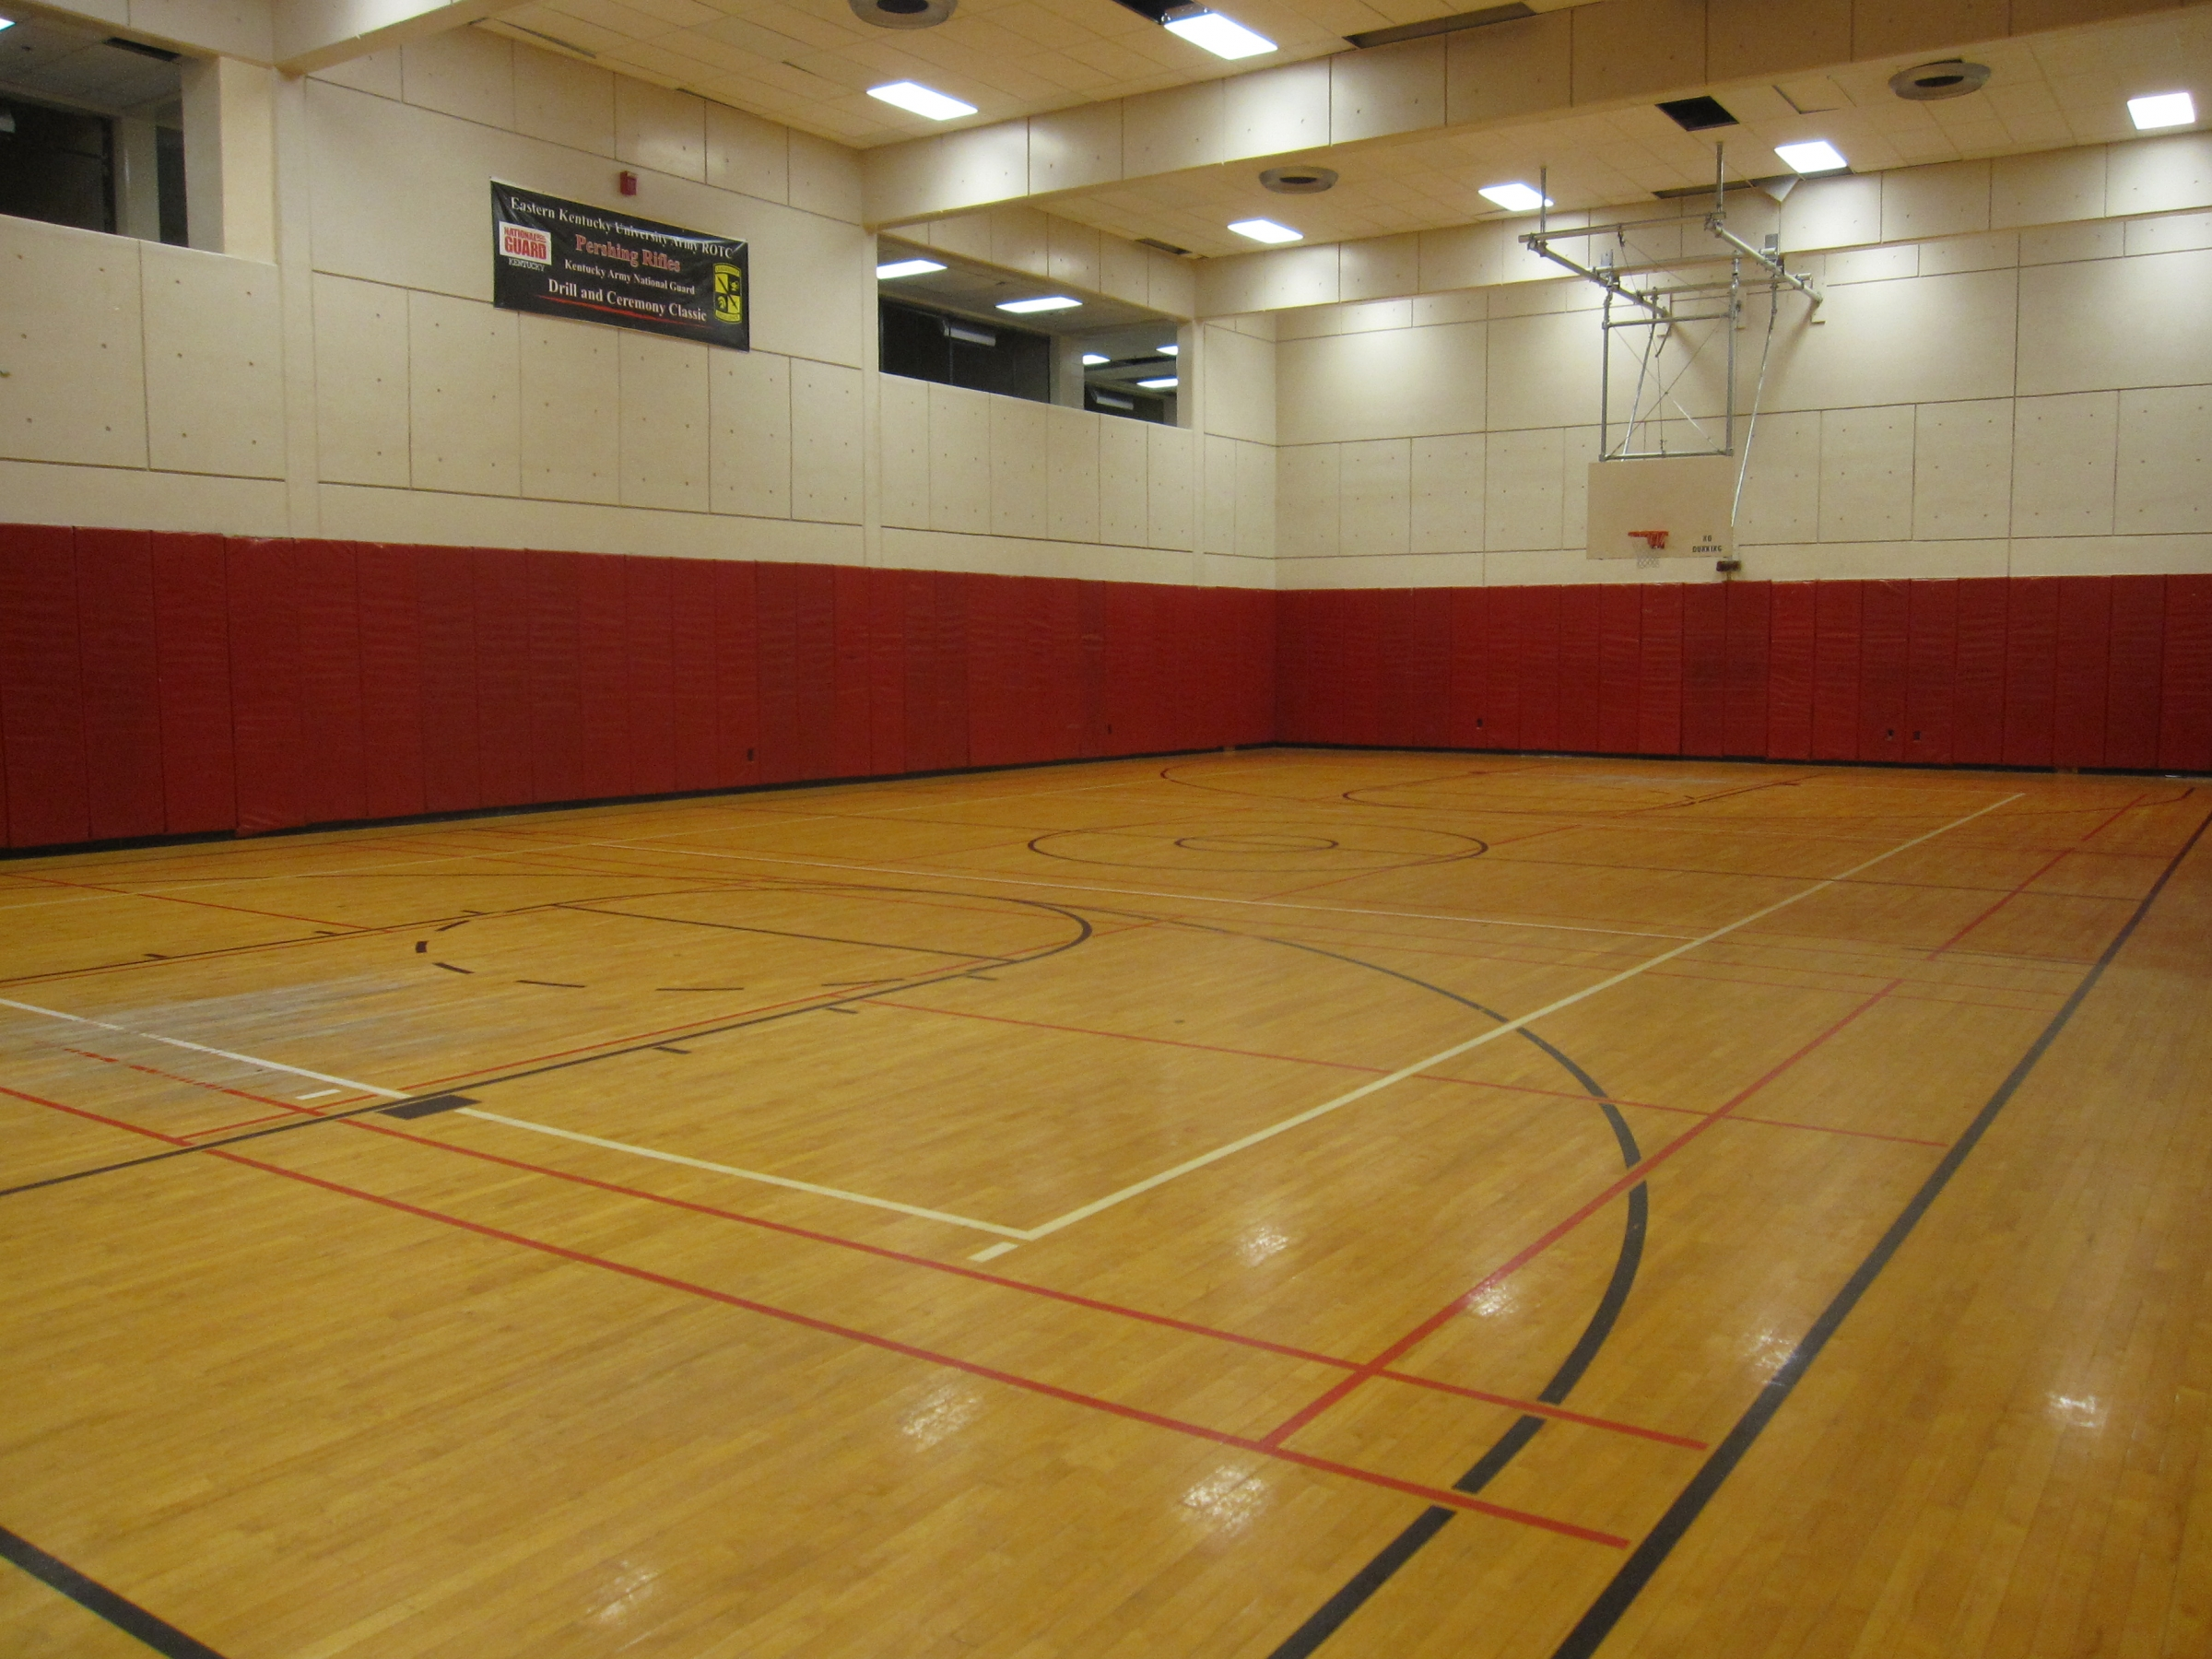 Facilities campus recreation eastern kentucky university for Design indoor basketball court